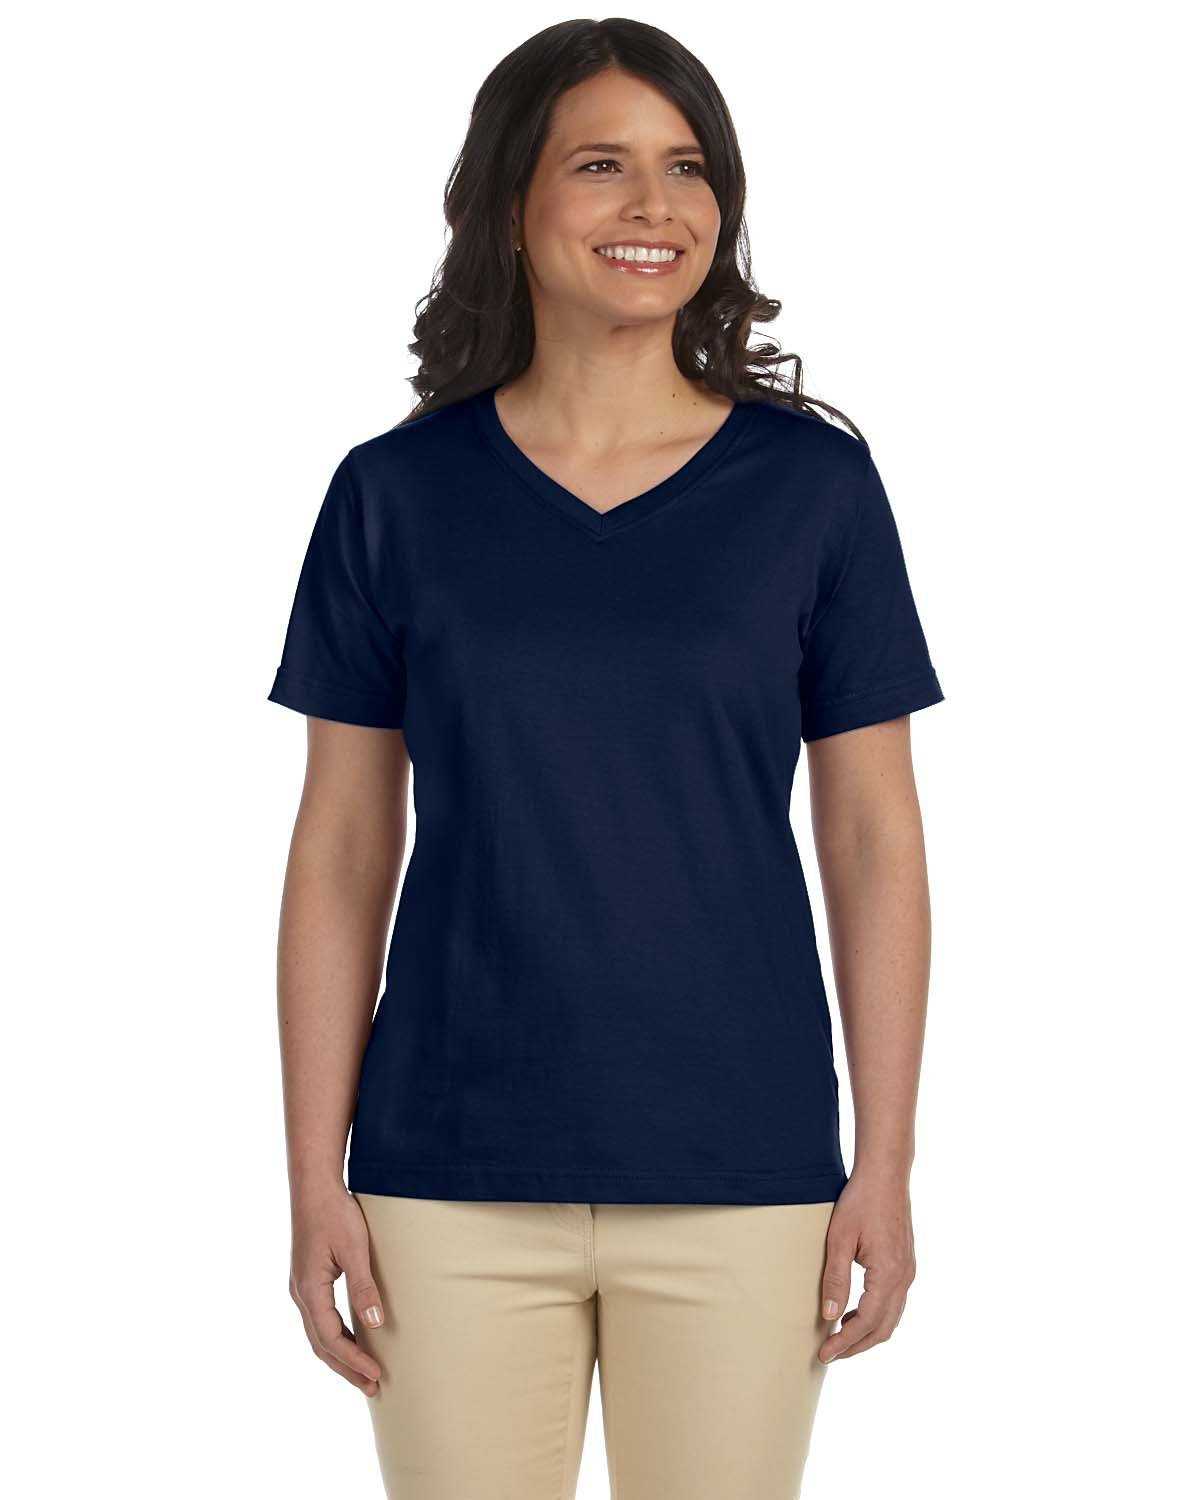 LAT Ladies' Premium Jersey V-Neck T-Shirt NAVY